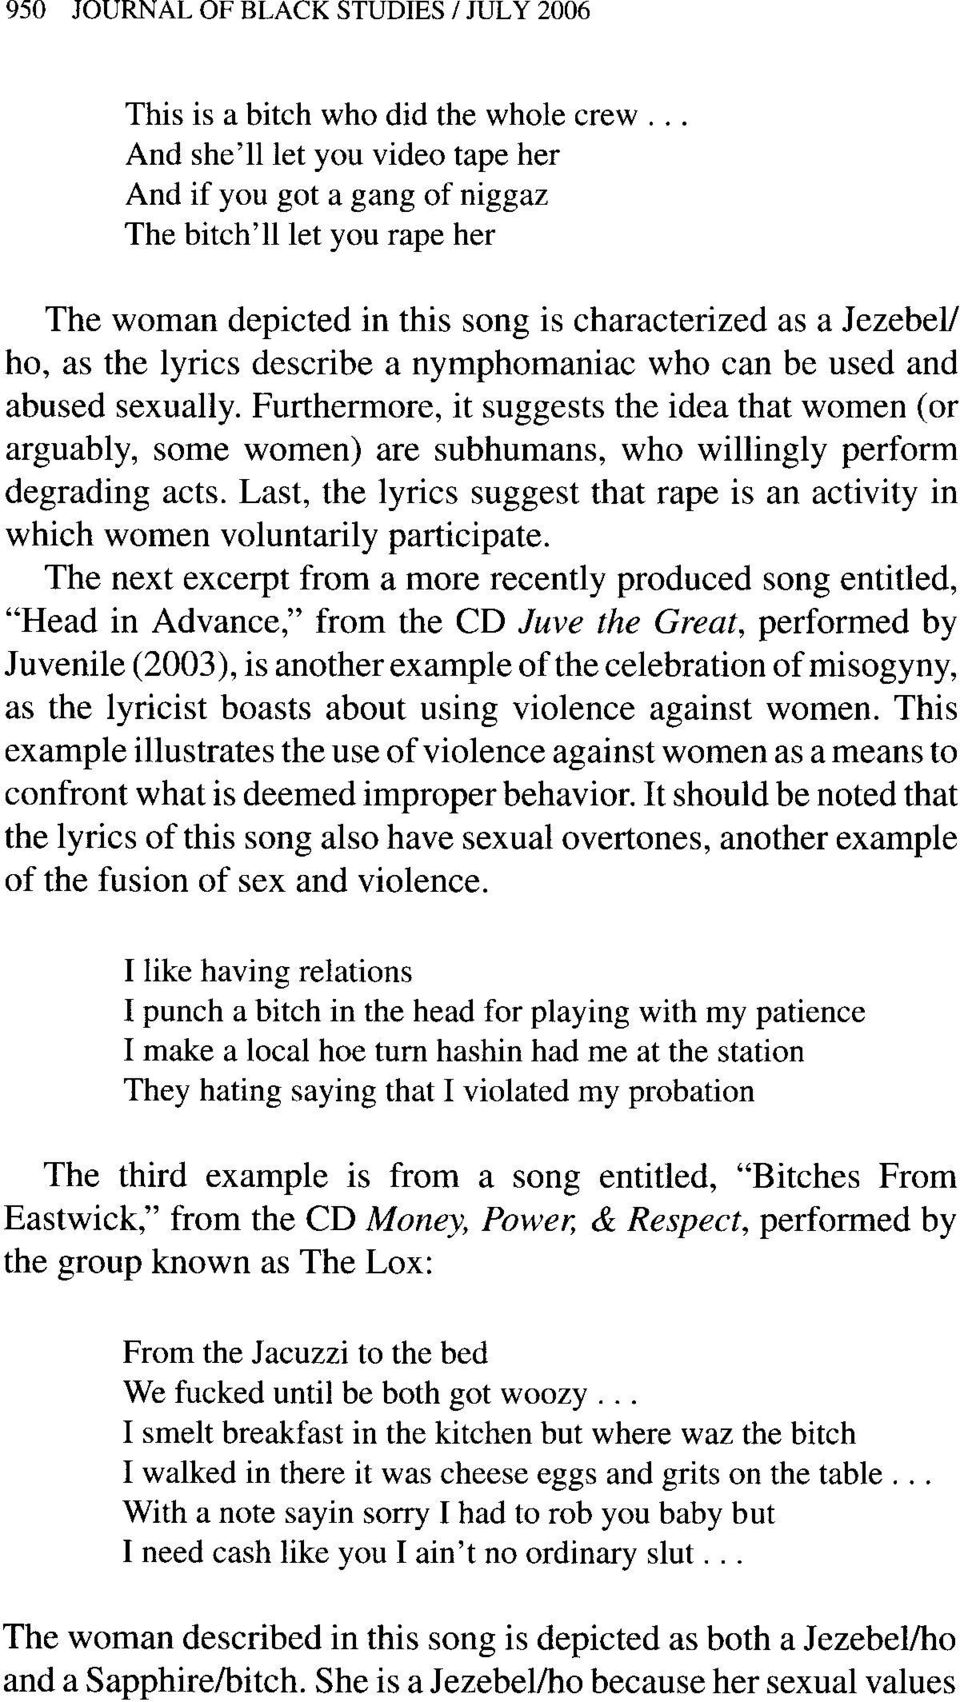 nymphomaniac who can be used and abused sexually. Furthermore, it suggests the idea that women (or arguably, some women) are subhumans, who willingly perform degrading acts.